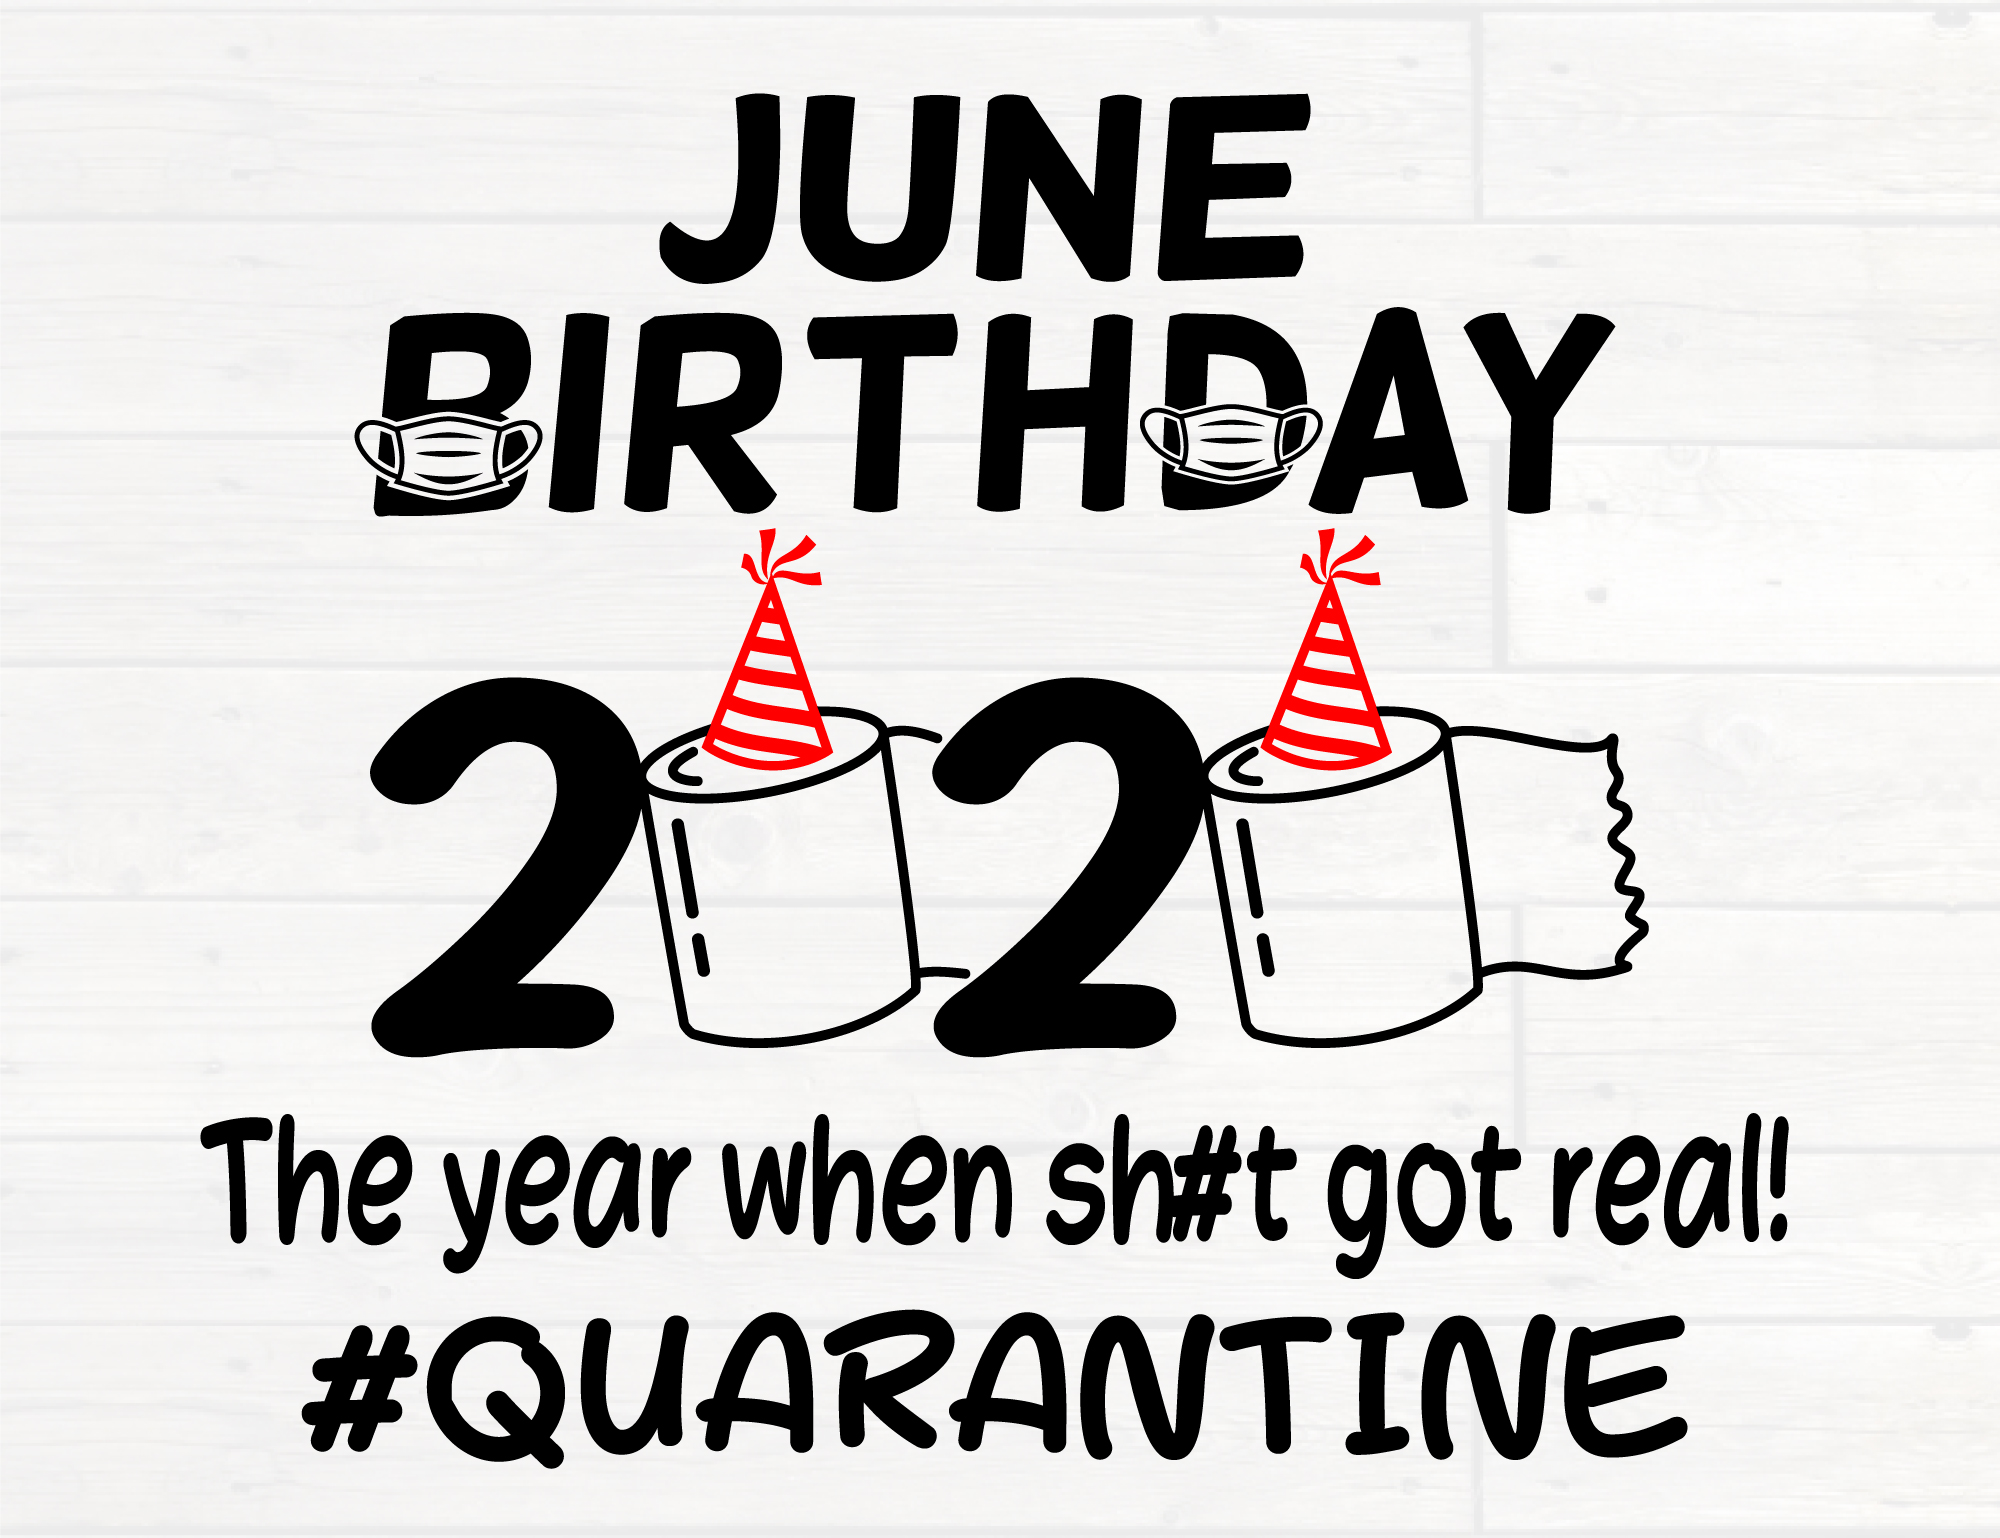 Download Free June Birthday 2020 Got Real Quarantined Graphic By Nicetomeetyou for Cricut Explore, Silhouette and other cutting machines.